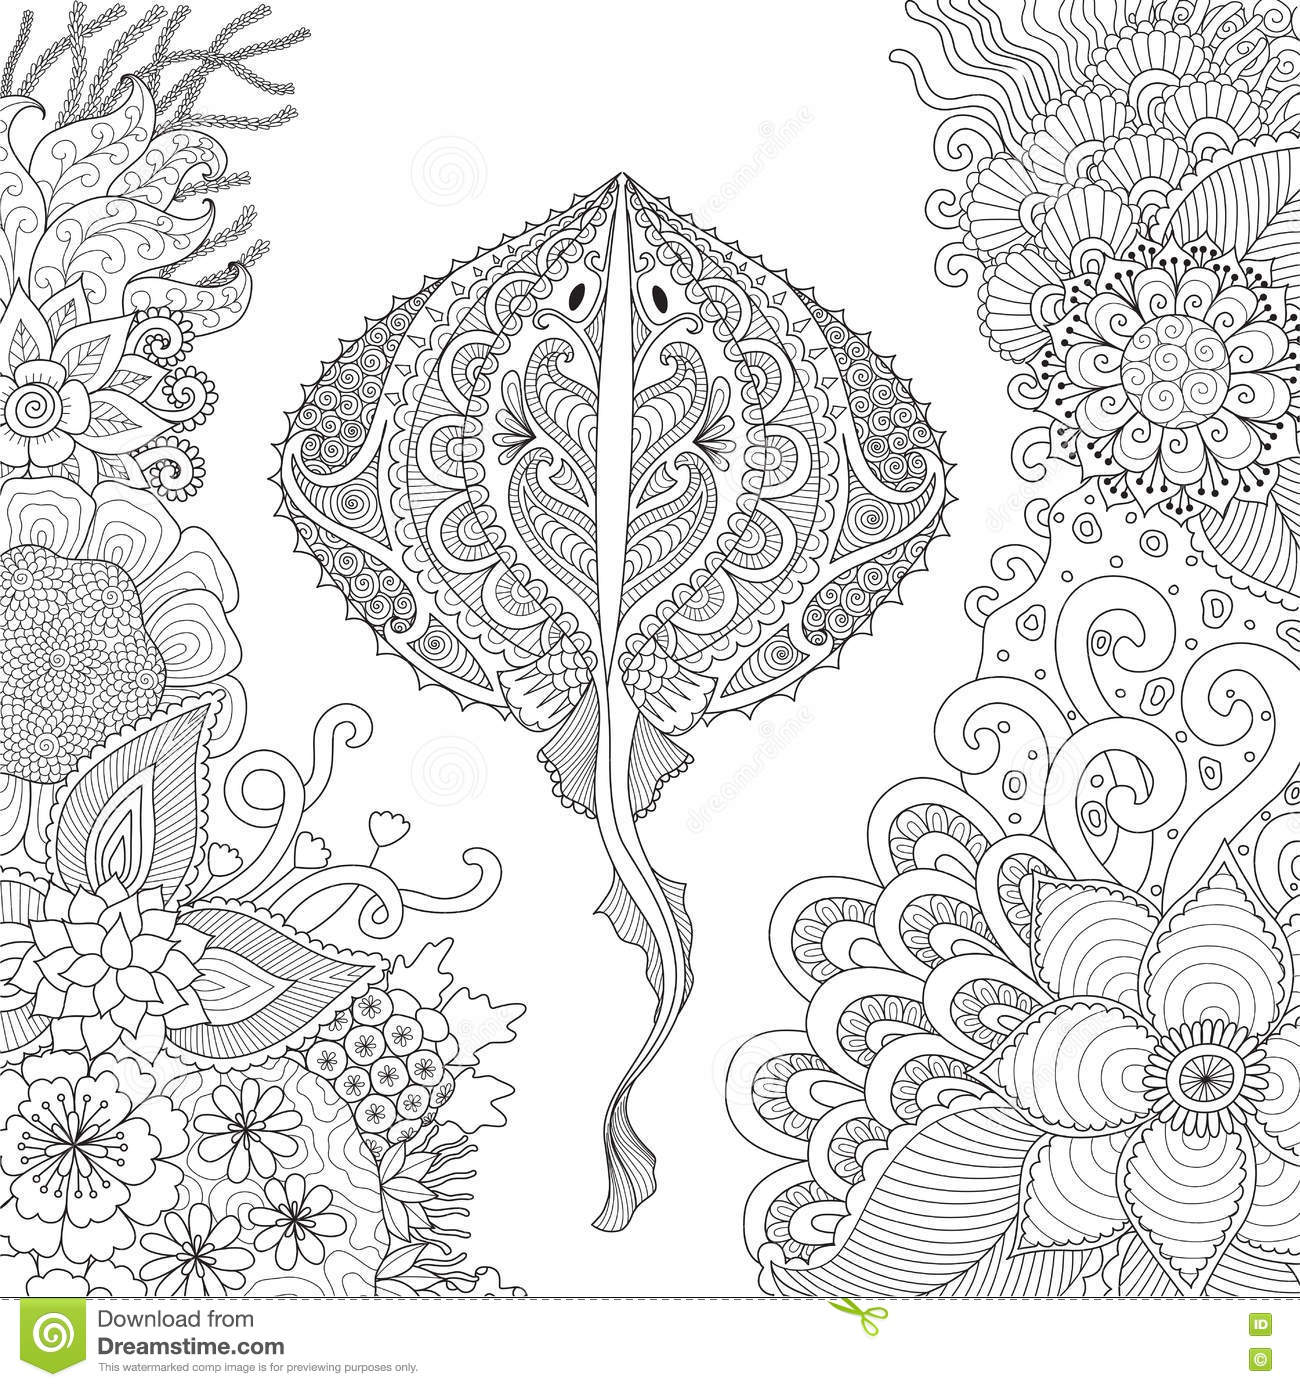 Zendoodle Of Stingray Swimming Among Beautiful Corals Under Water